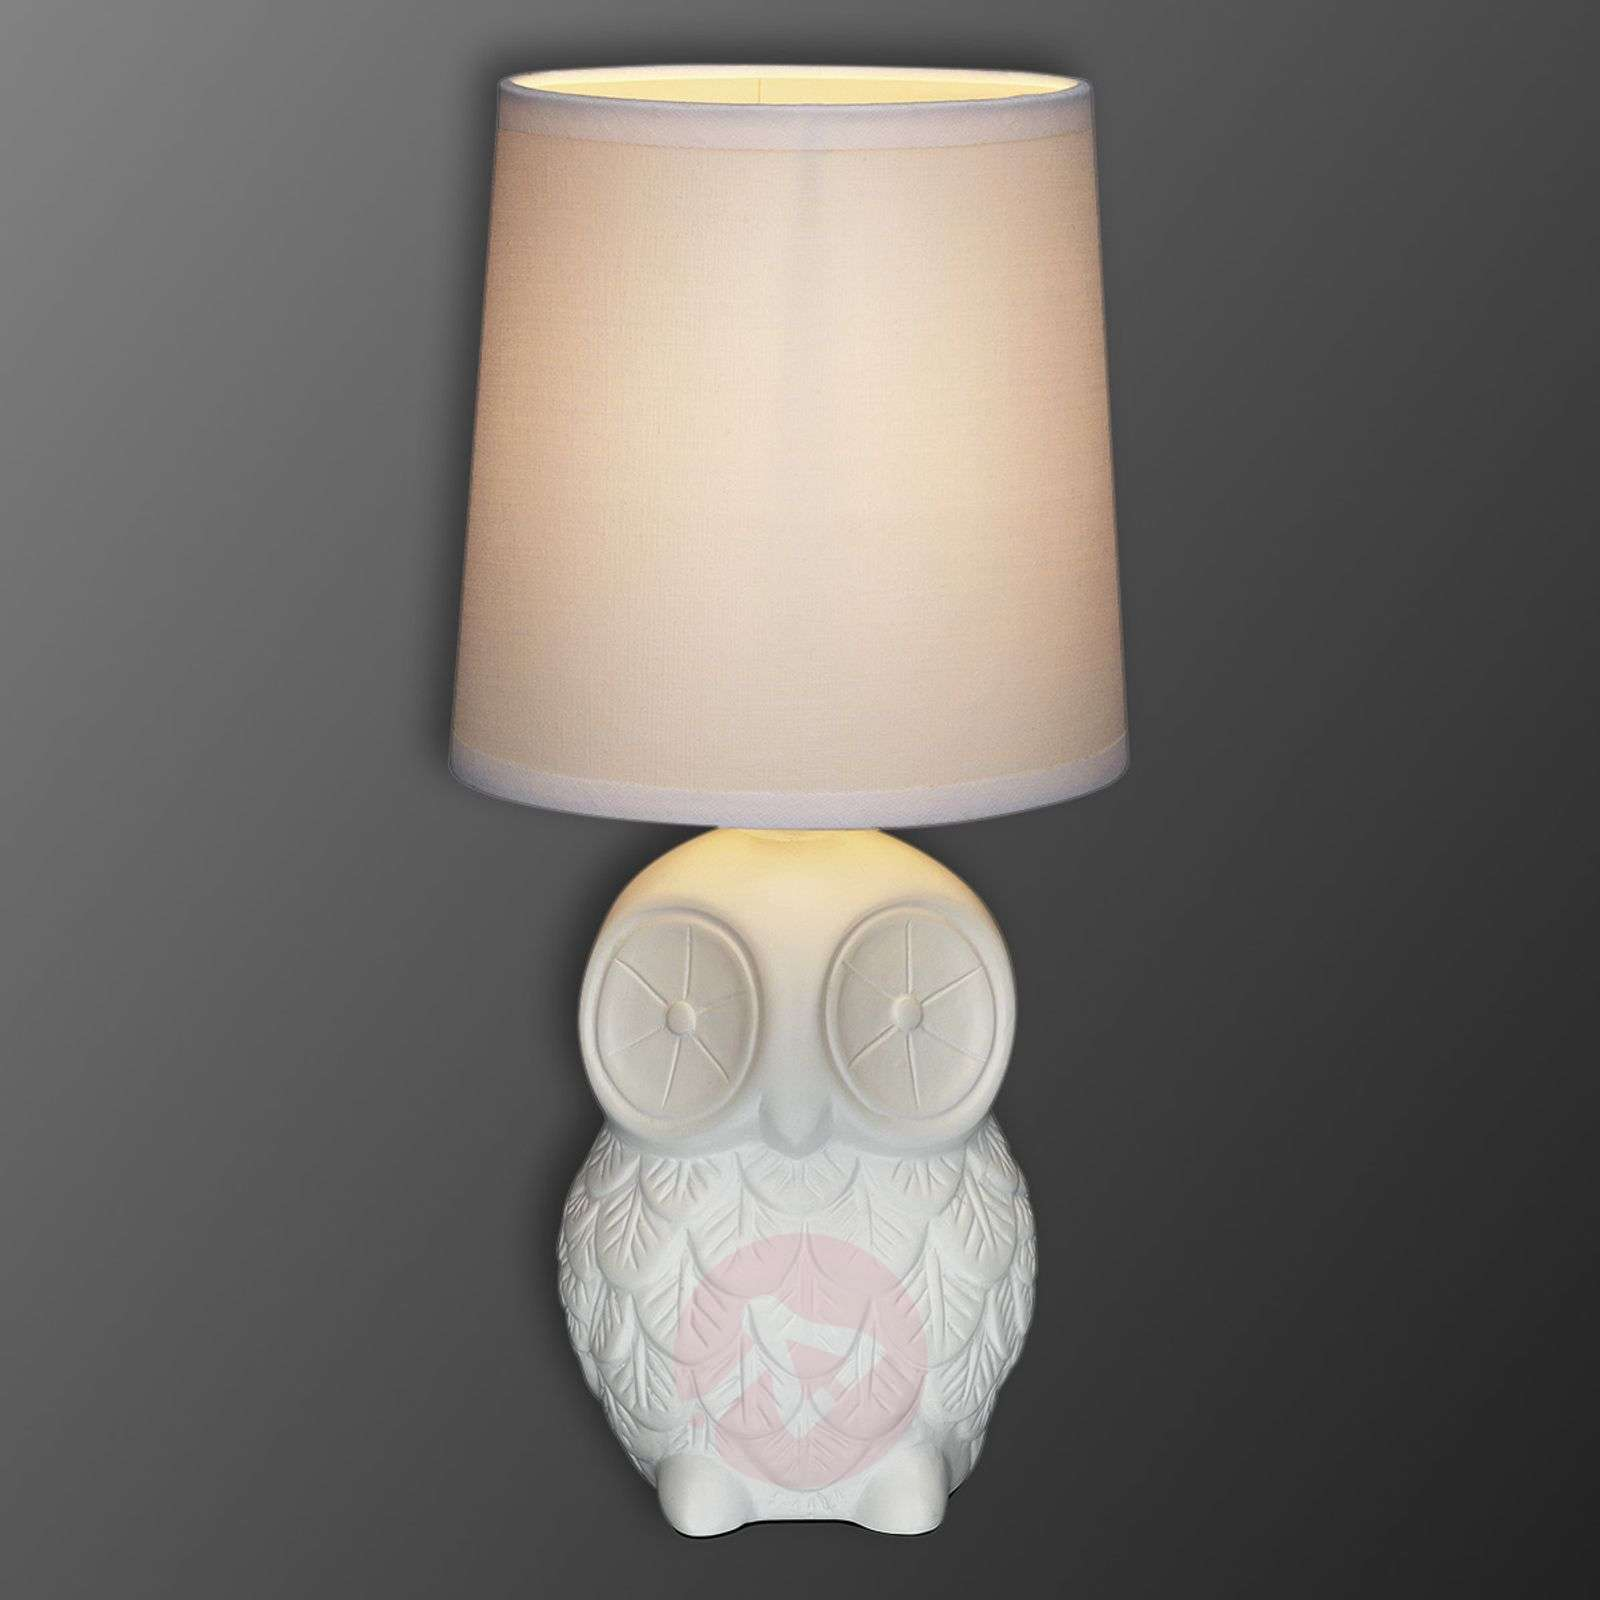 Helge owl table lamp with white fabric lampshade lights helge owl table lamp with white fabric lampshade 6506124 01 aloadofball Gallery